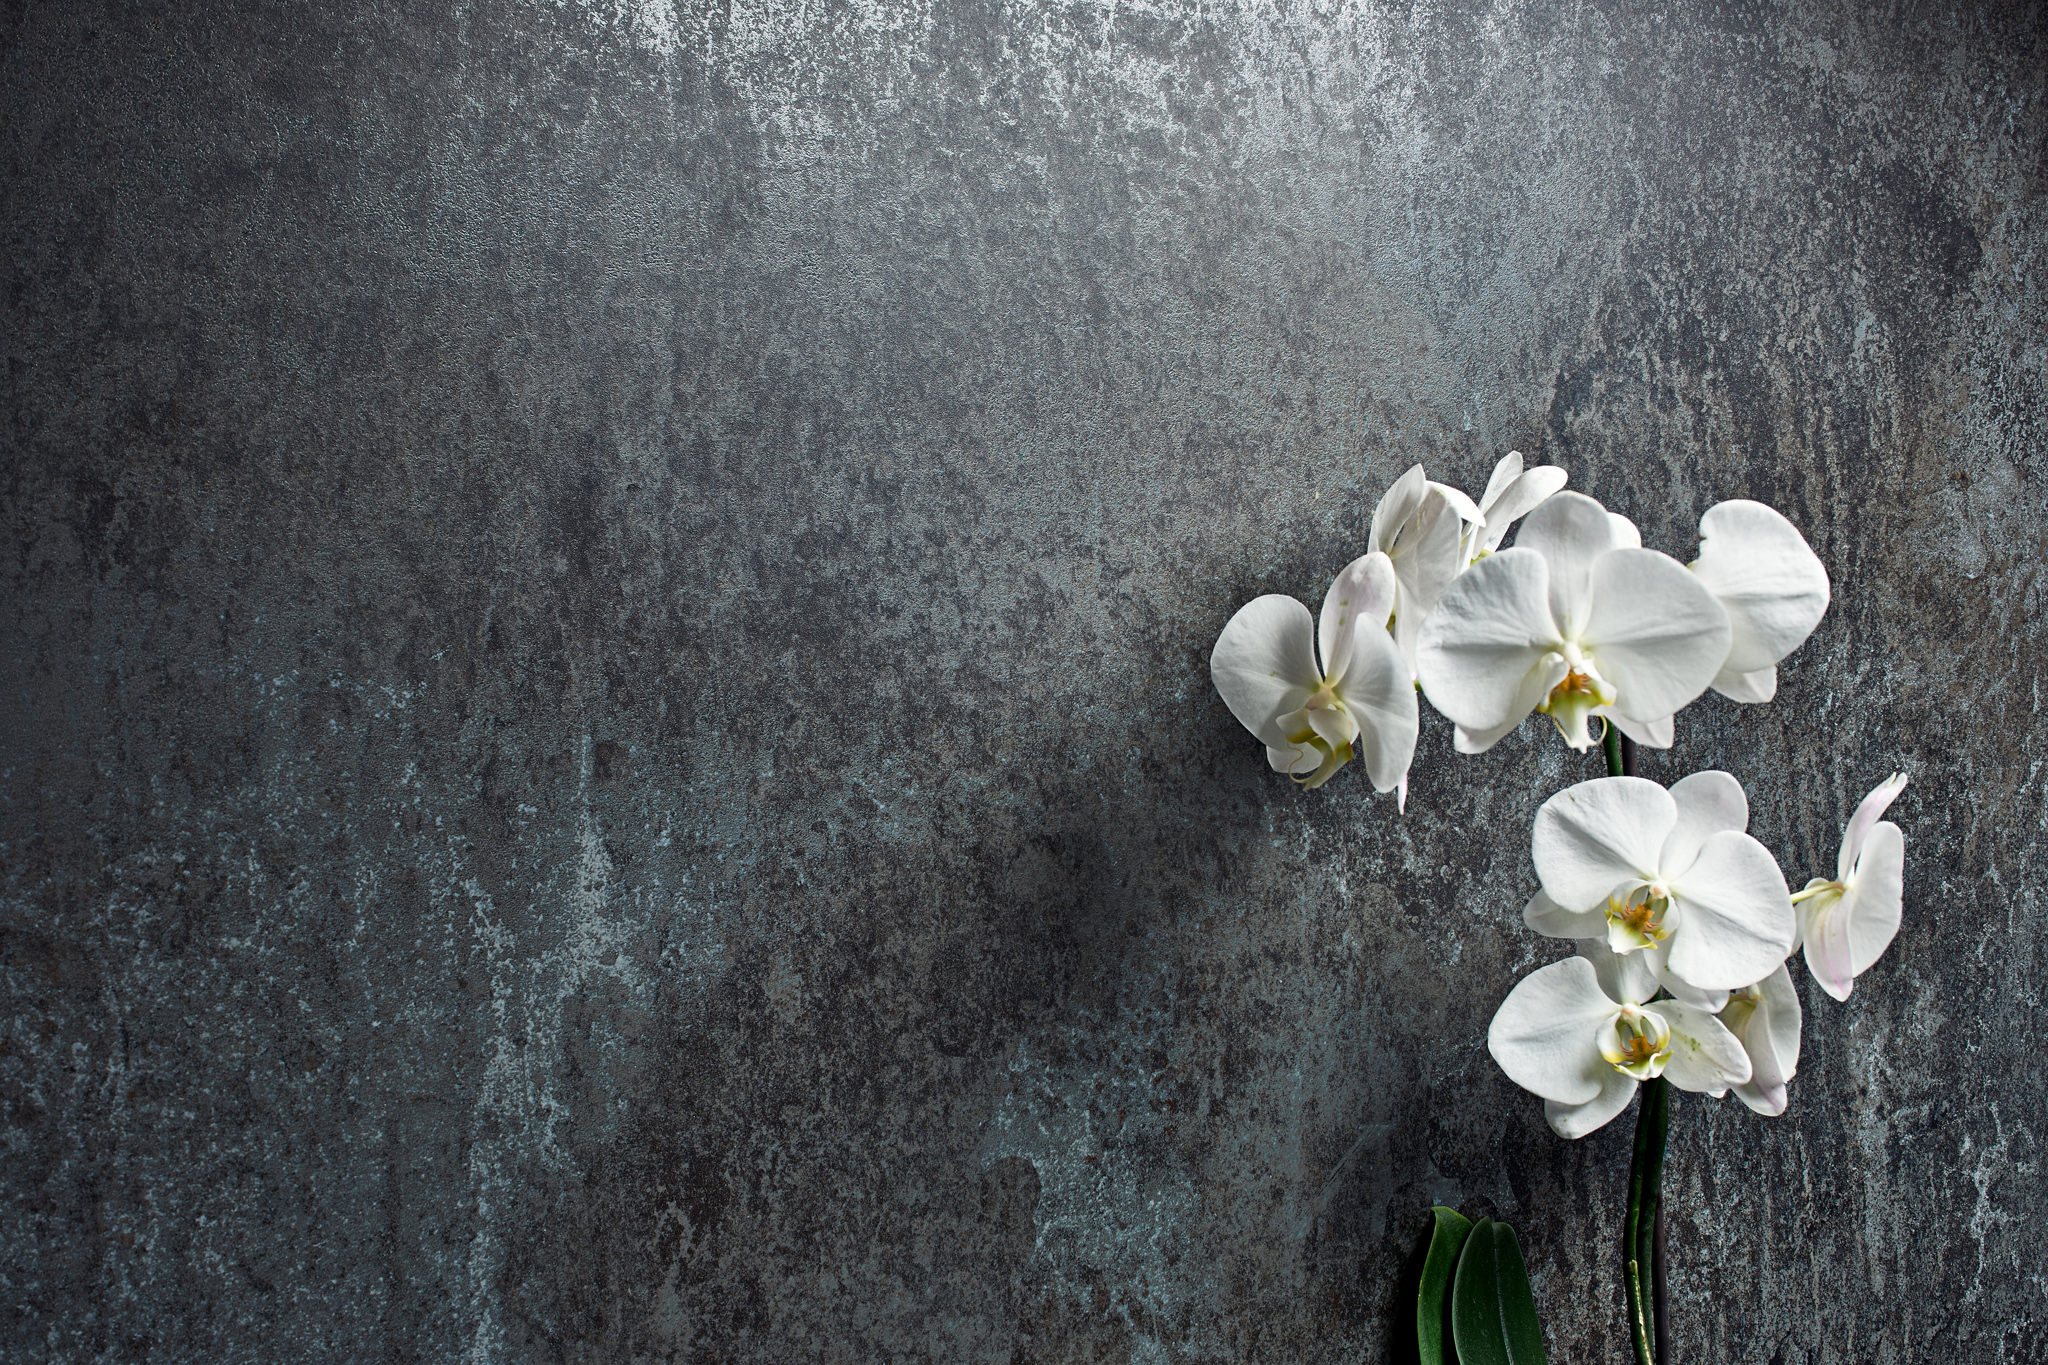 porcelain tile images: Fusione range high quality photo